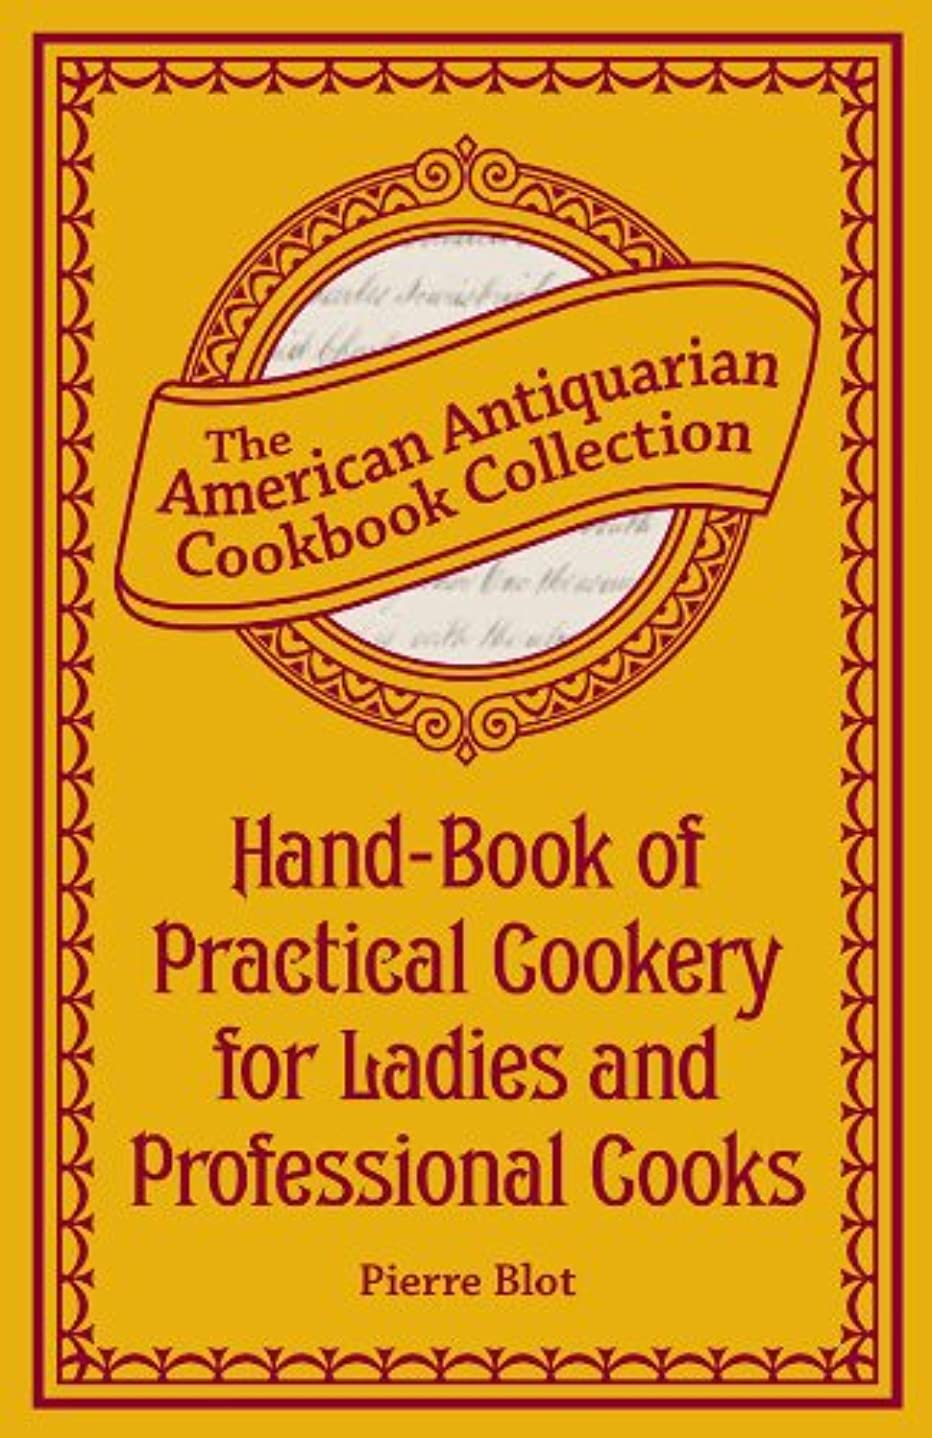 花嫁取り囲む成果Hand-Book of Practical Cookery for Ladies and Professional Cooks: Containing the Whole Science and Art of Preparing Human Food (American Antiquarian Cookbook Collection) (English Edition)